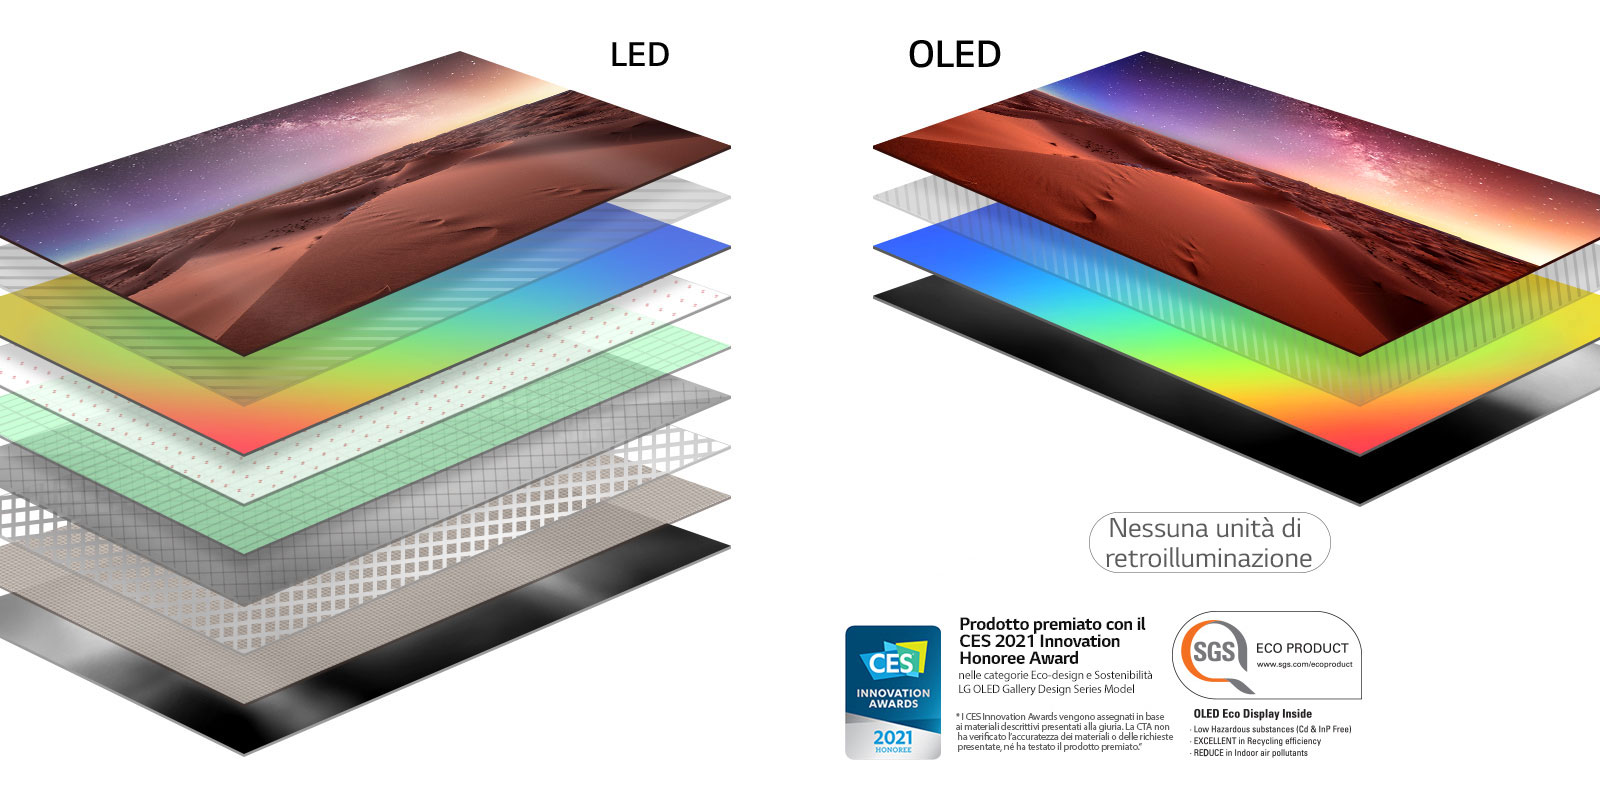 Comparison of layer composition of LED backlit TV screen and self-illuminating OLED TV (play video)